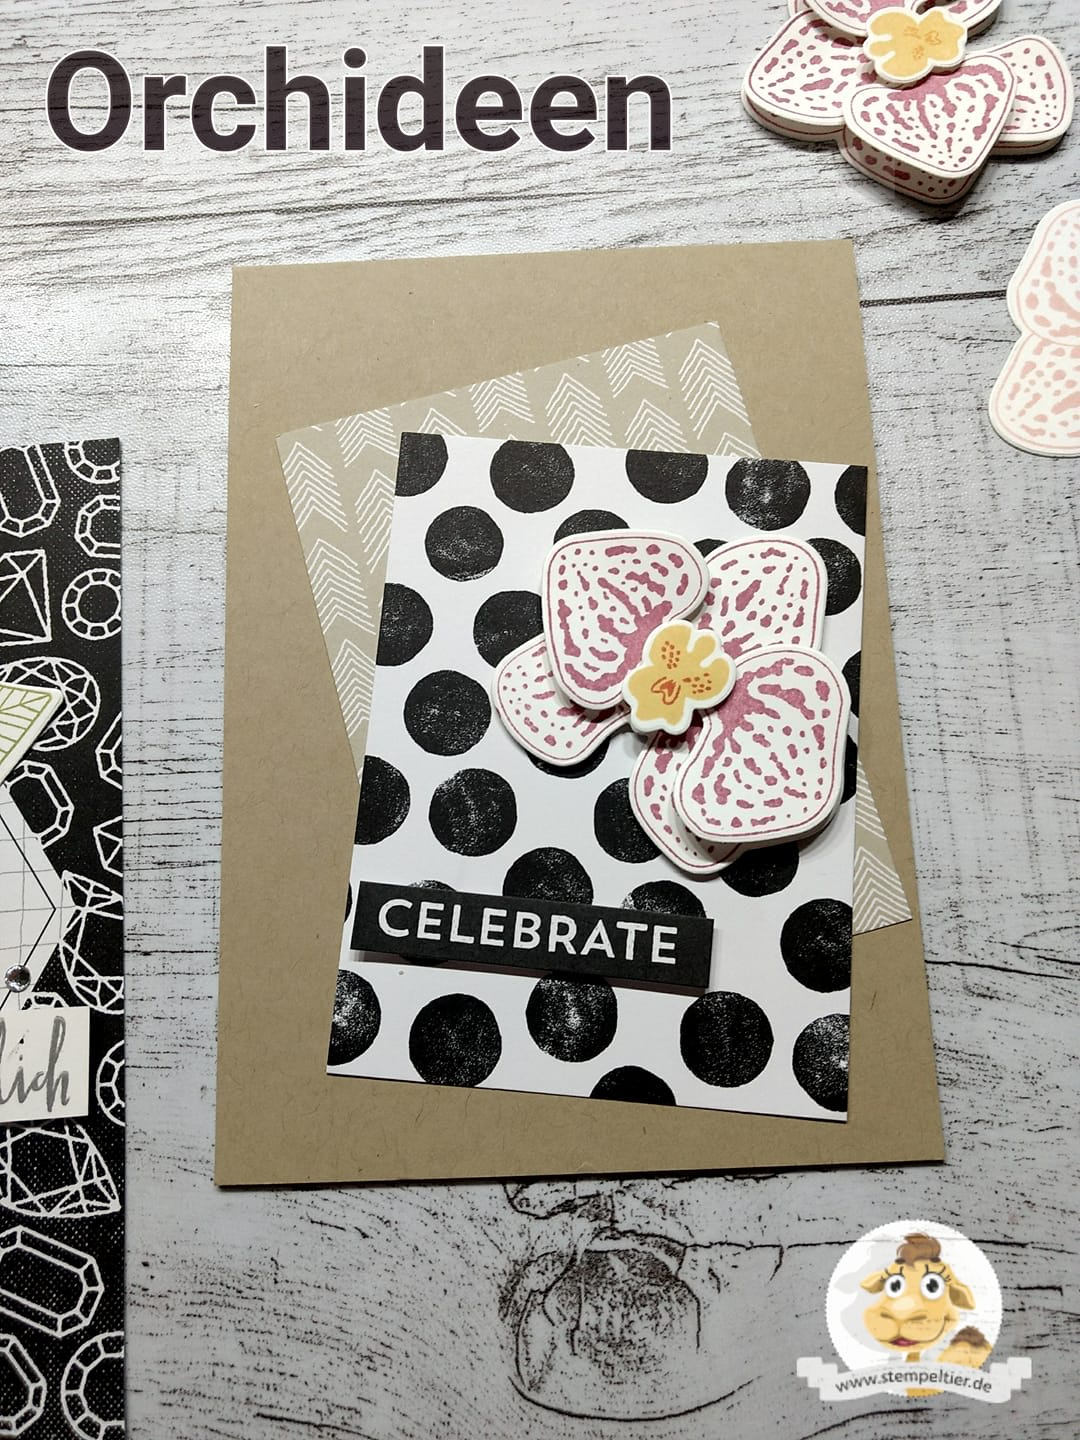 stampin up blog orchid builder orchideenzweige orchidee memories and more kärtchen stempeltier